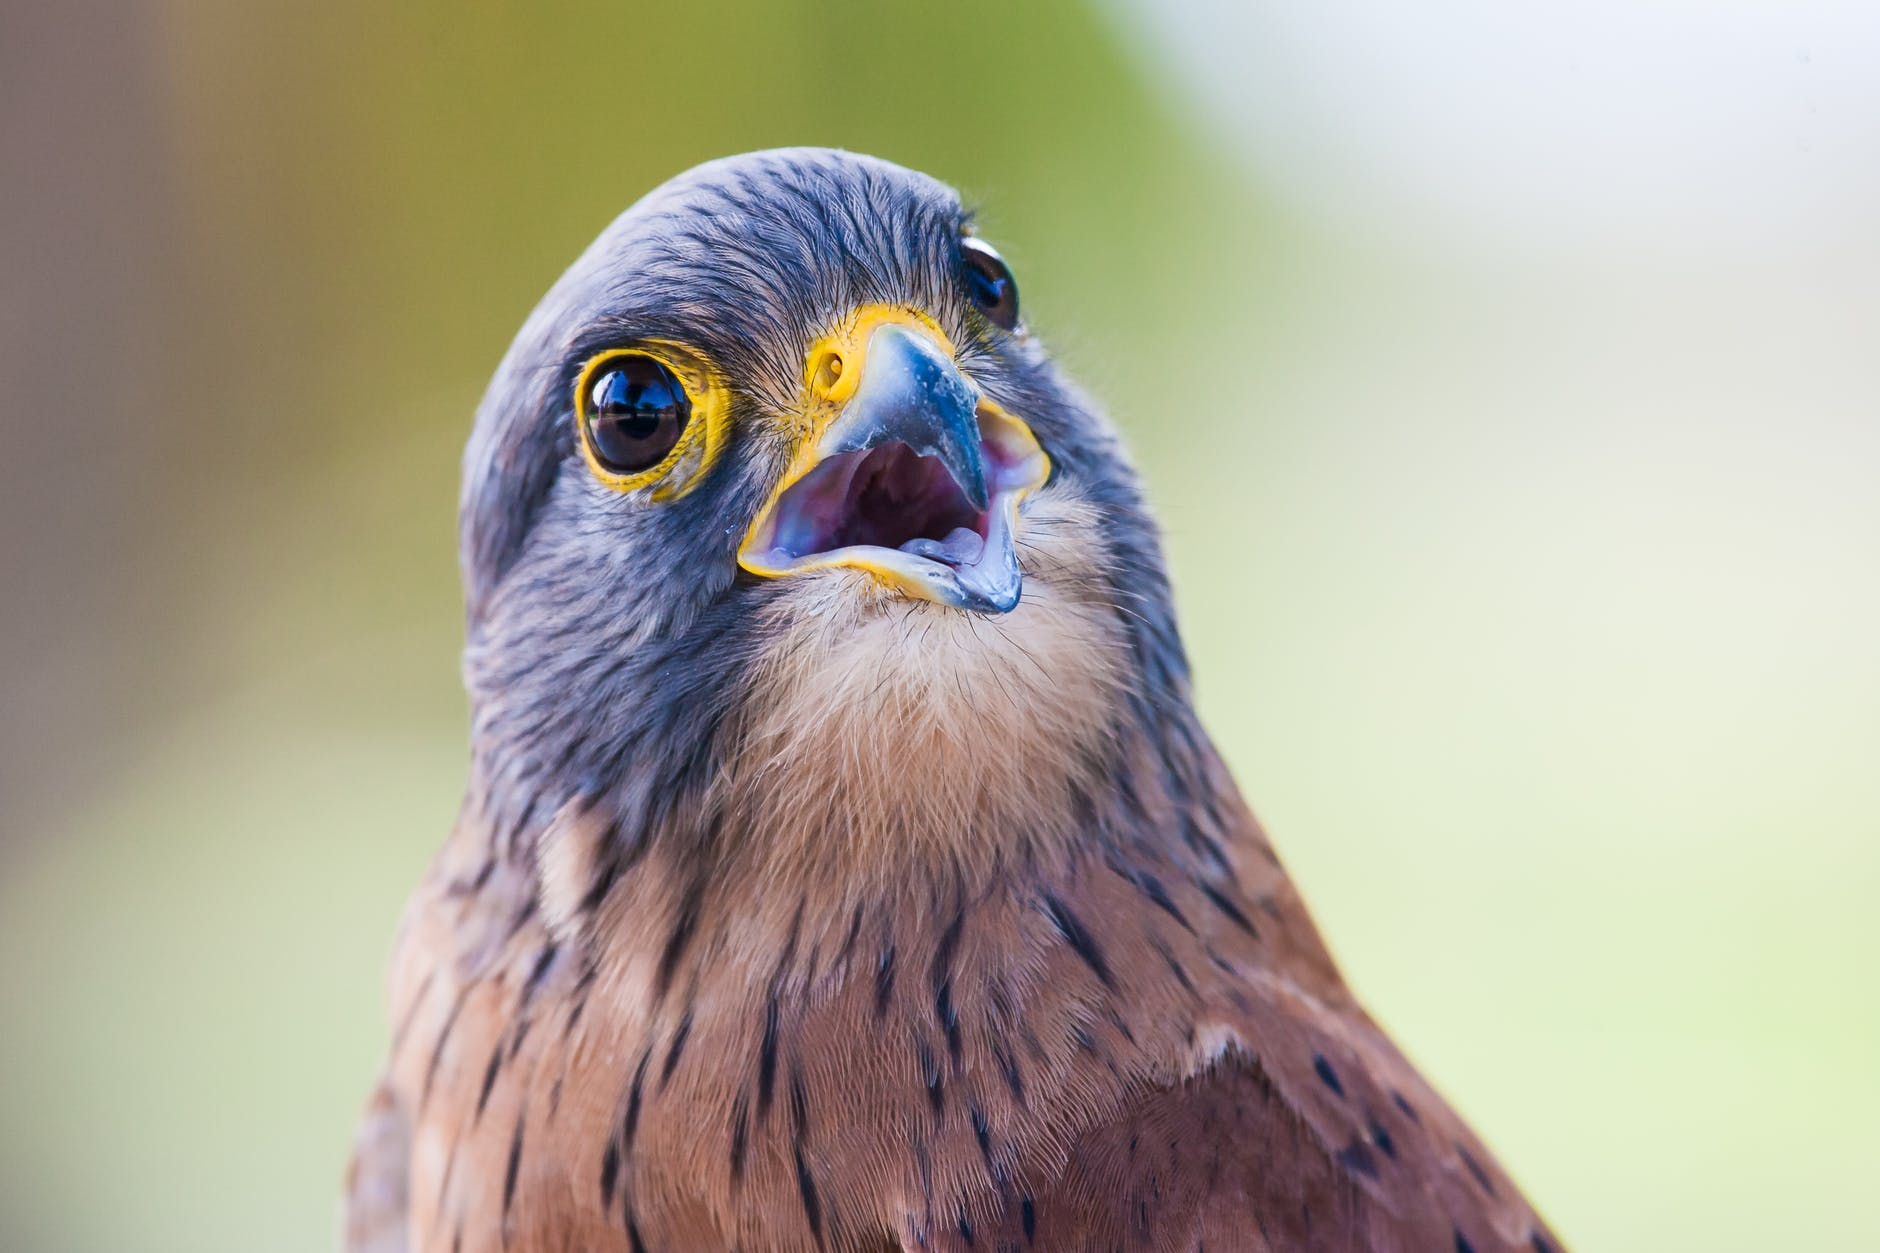 portrait photo of brown and gray bird